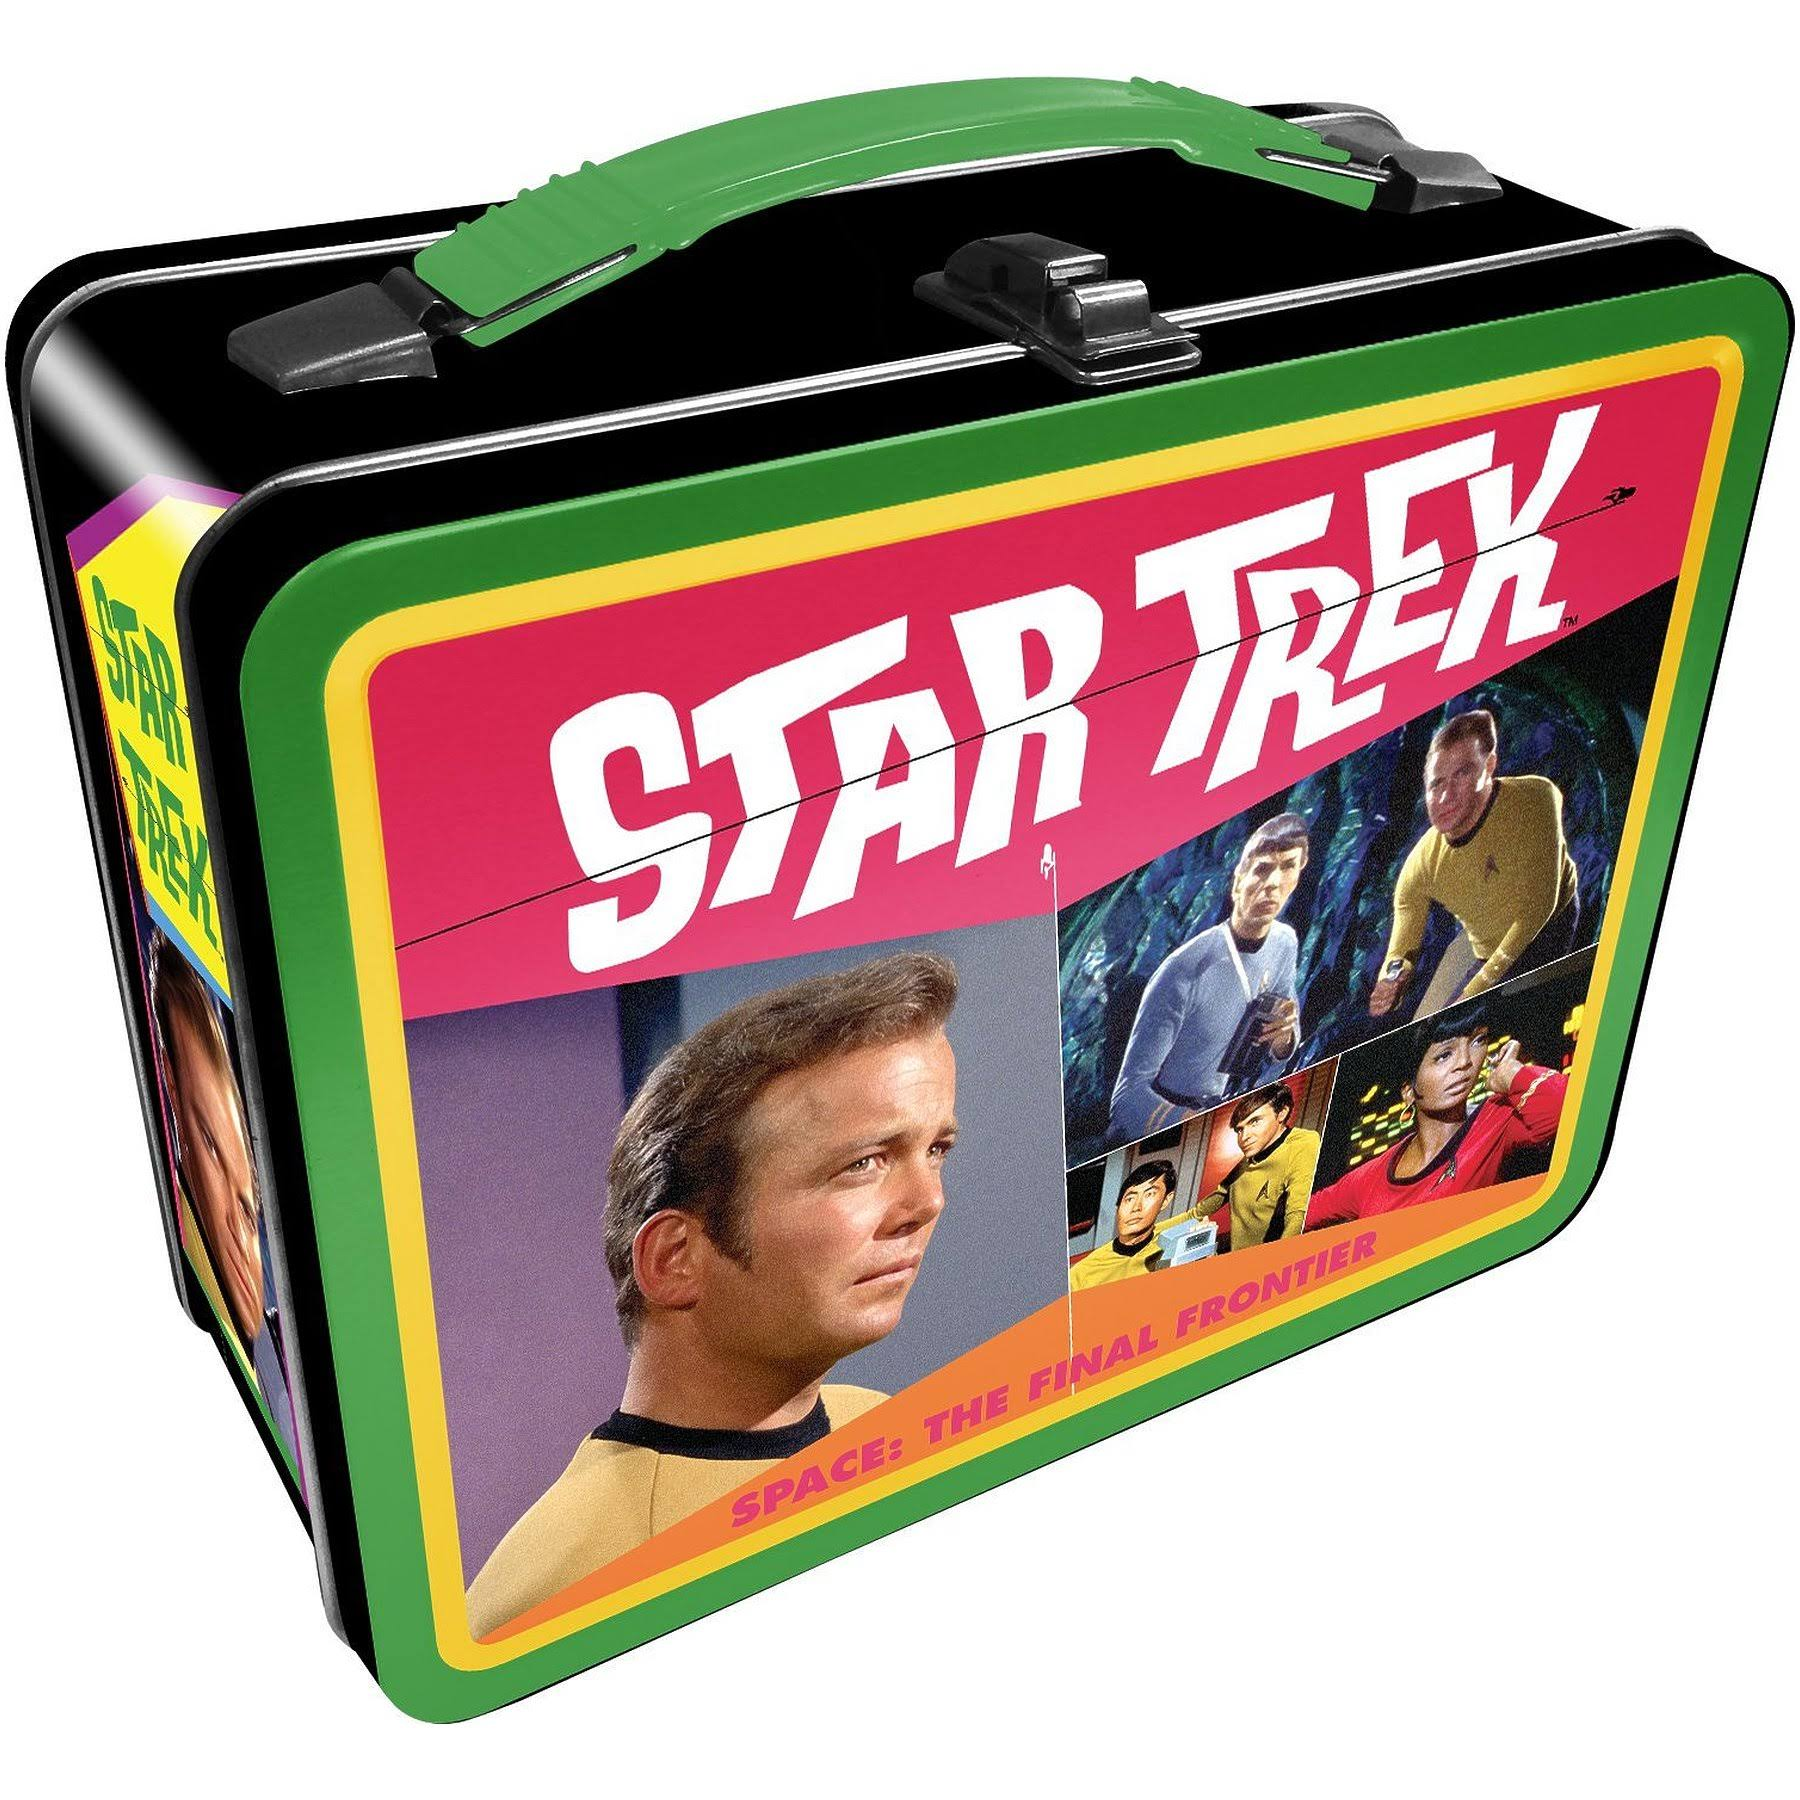 Star Trek Retro Lunch Box